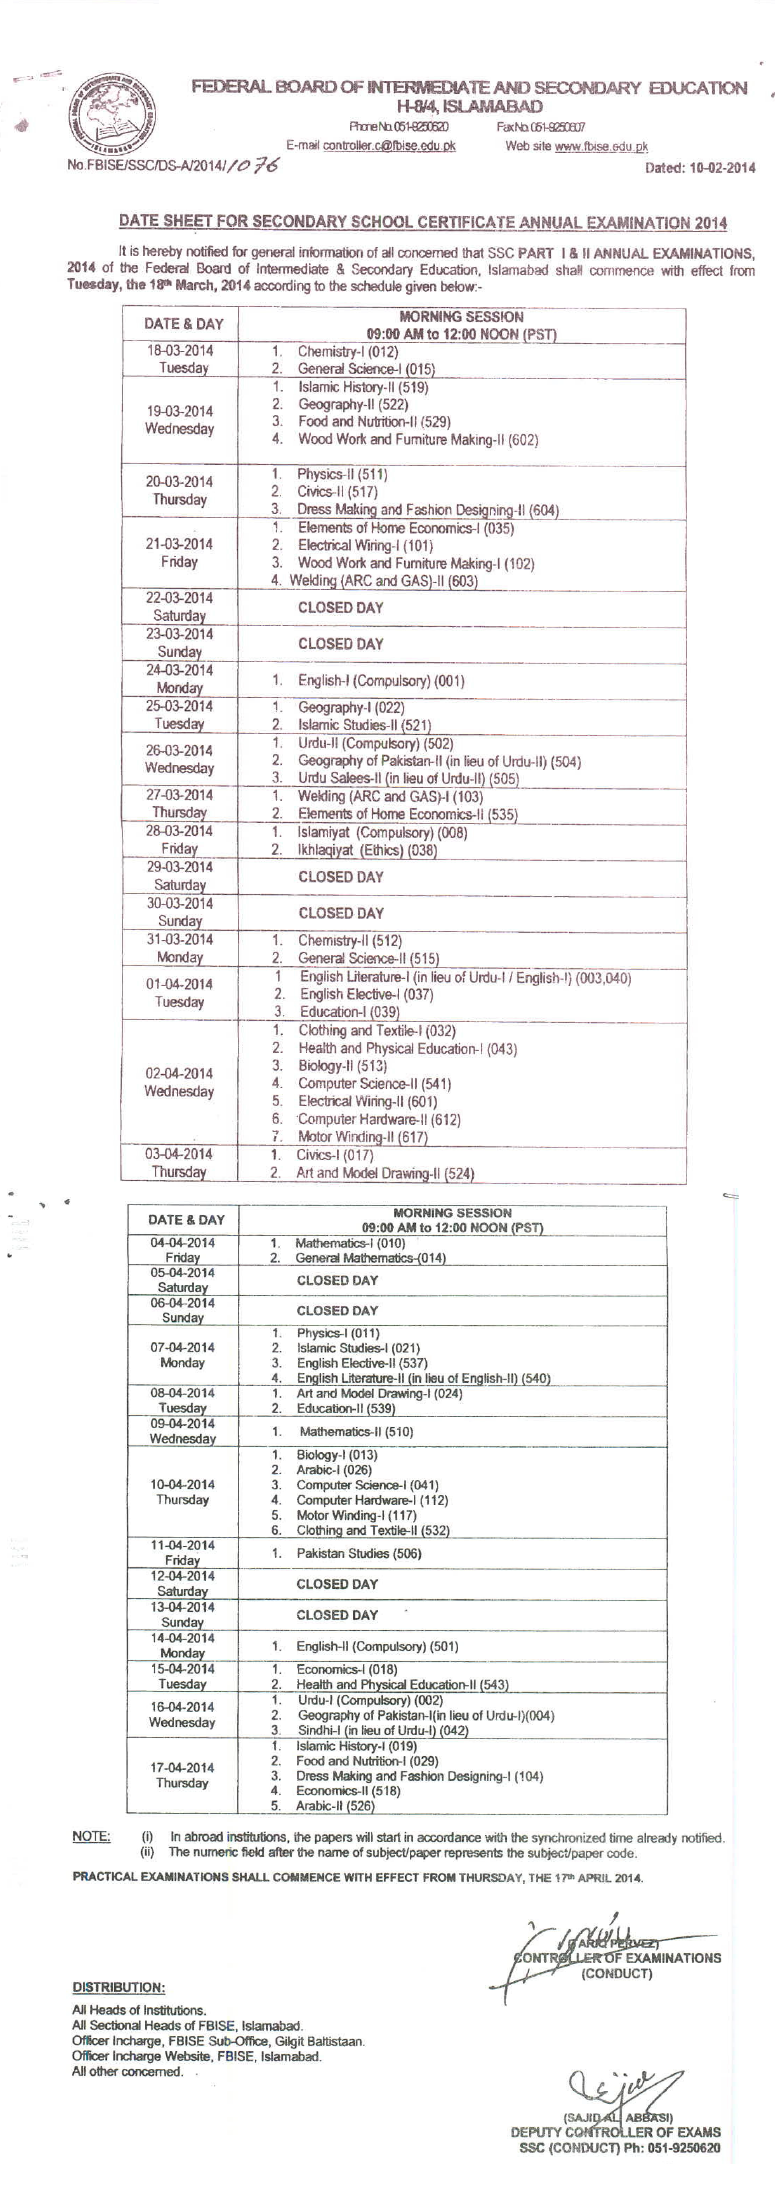 FBISE Federal Board Matric 10th Class Date Sheet 2014